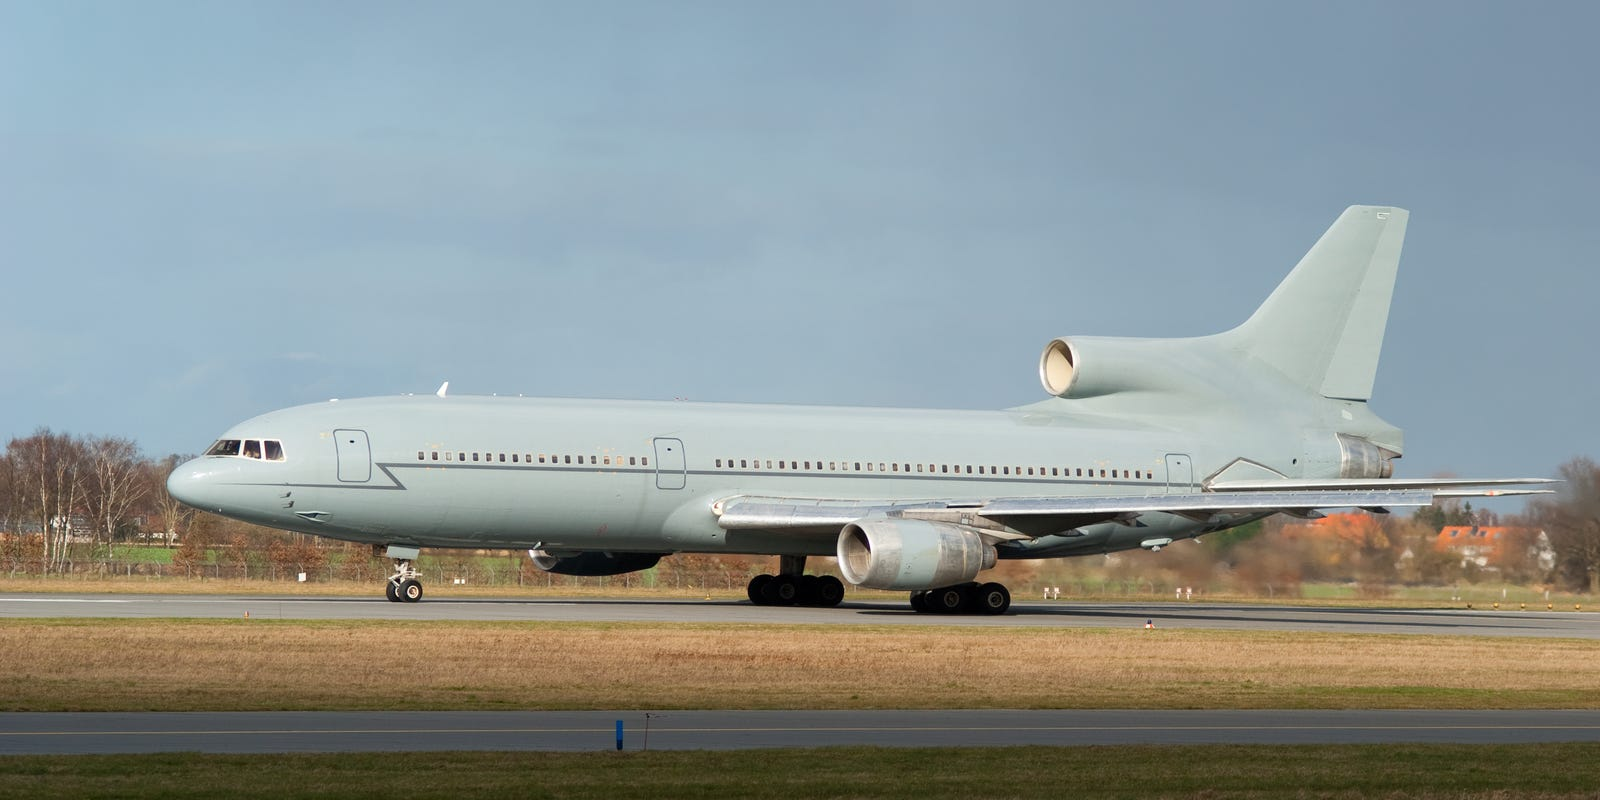 Three-engine jets: Questions about the L1011 and DC-10